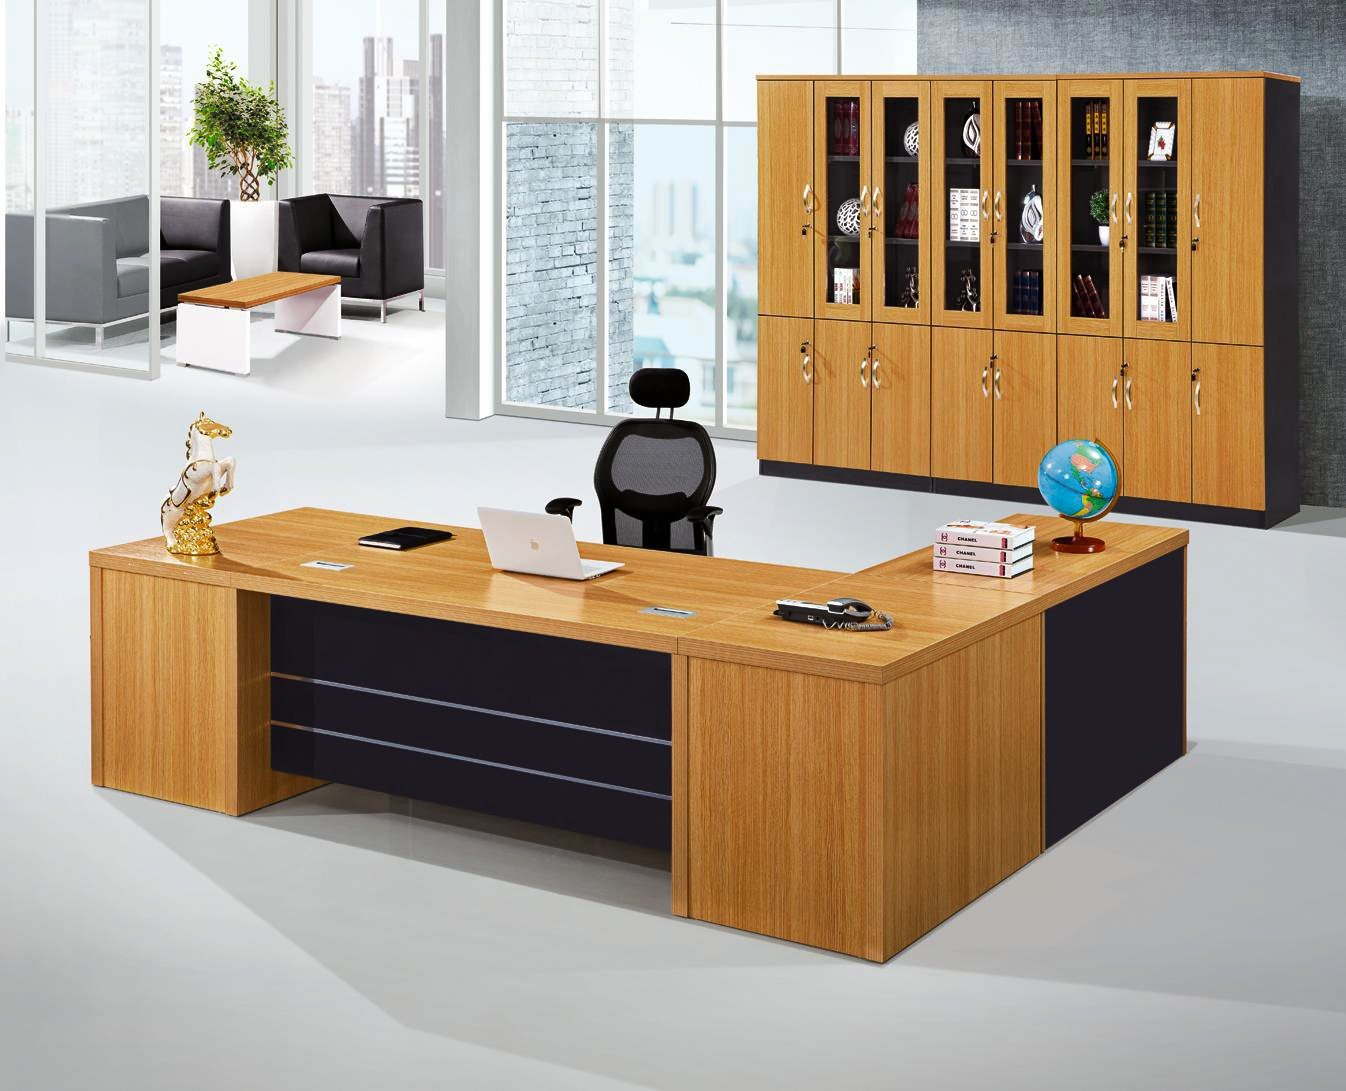 China Modern Office Furniture MFC Wooden MDF Office Table (NS-NW052)